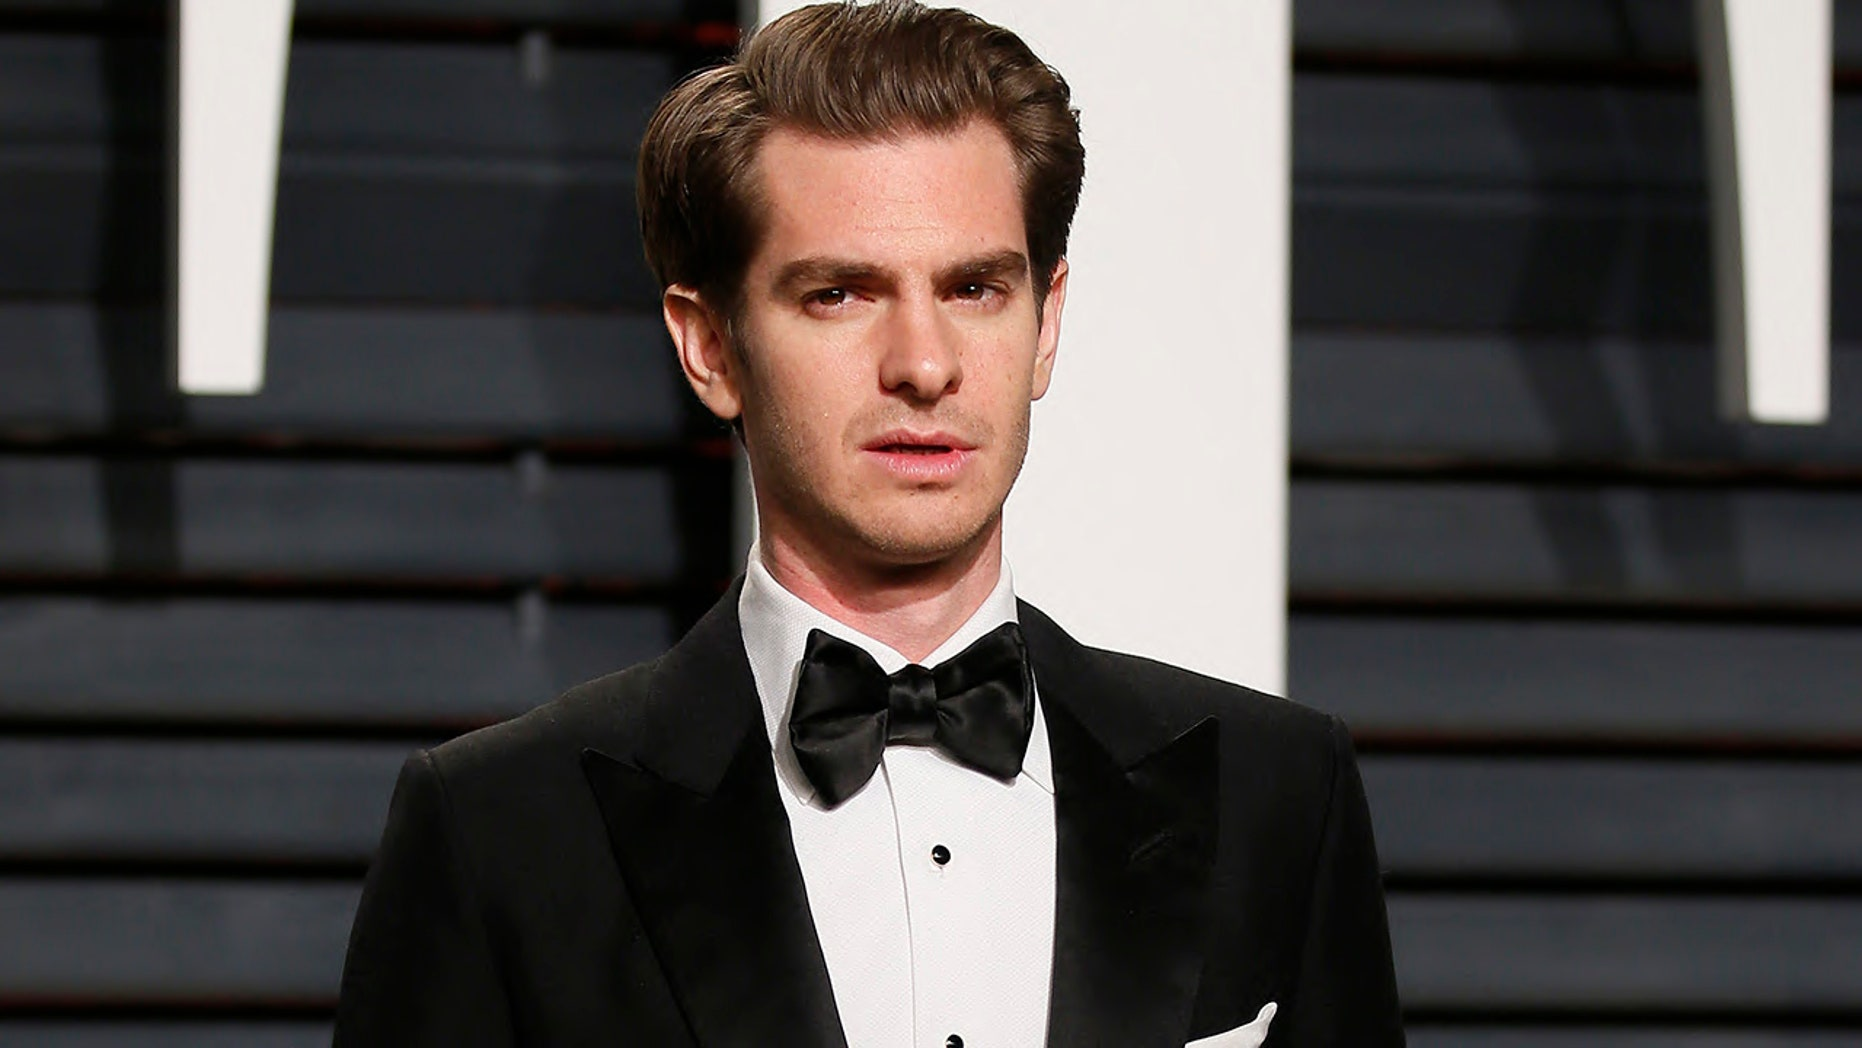 Andrew Garfield arrives at the Oscars Vanity Fair party on Feb. 27, 2017. The actor recently discussed his sexuality.